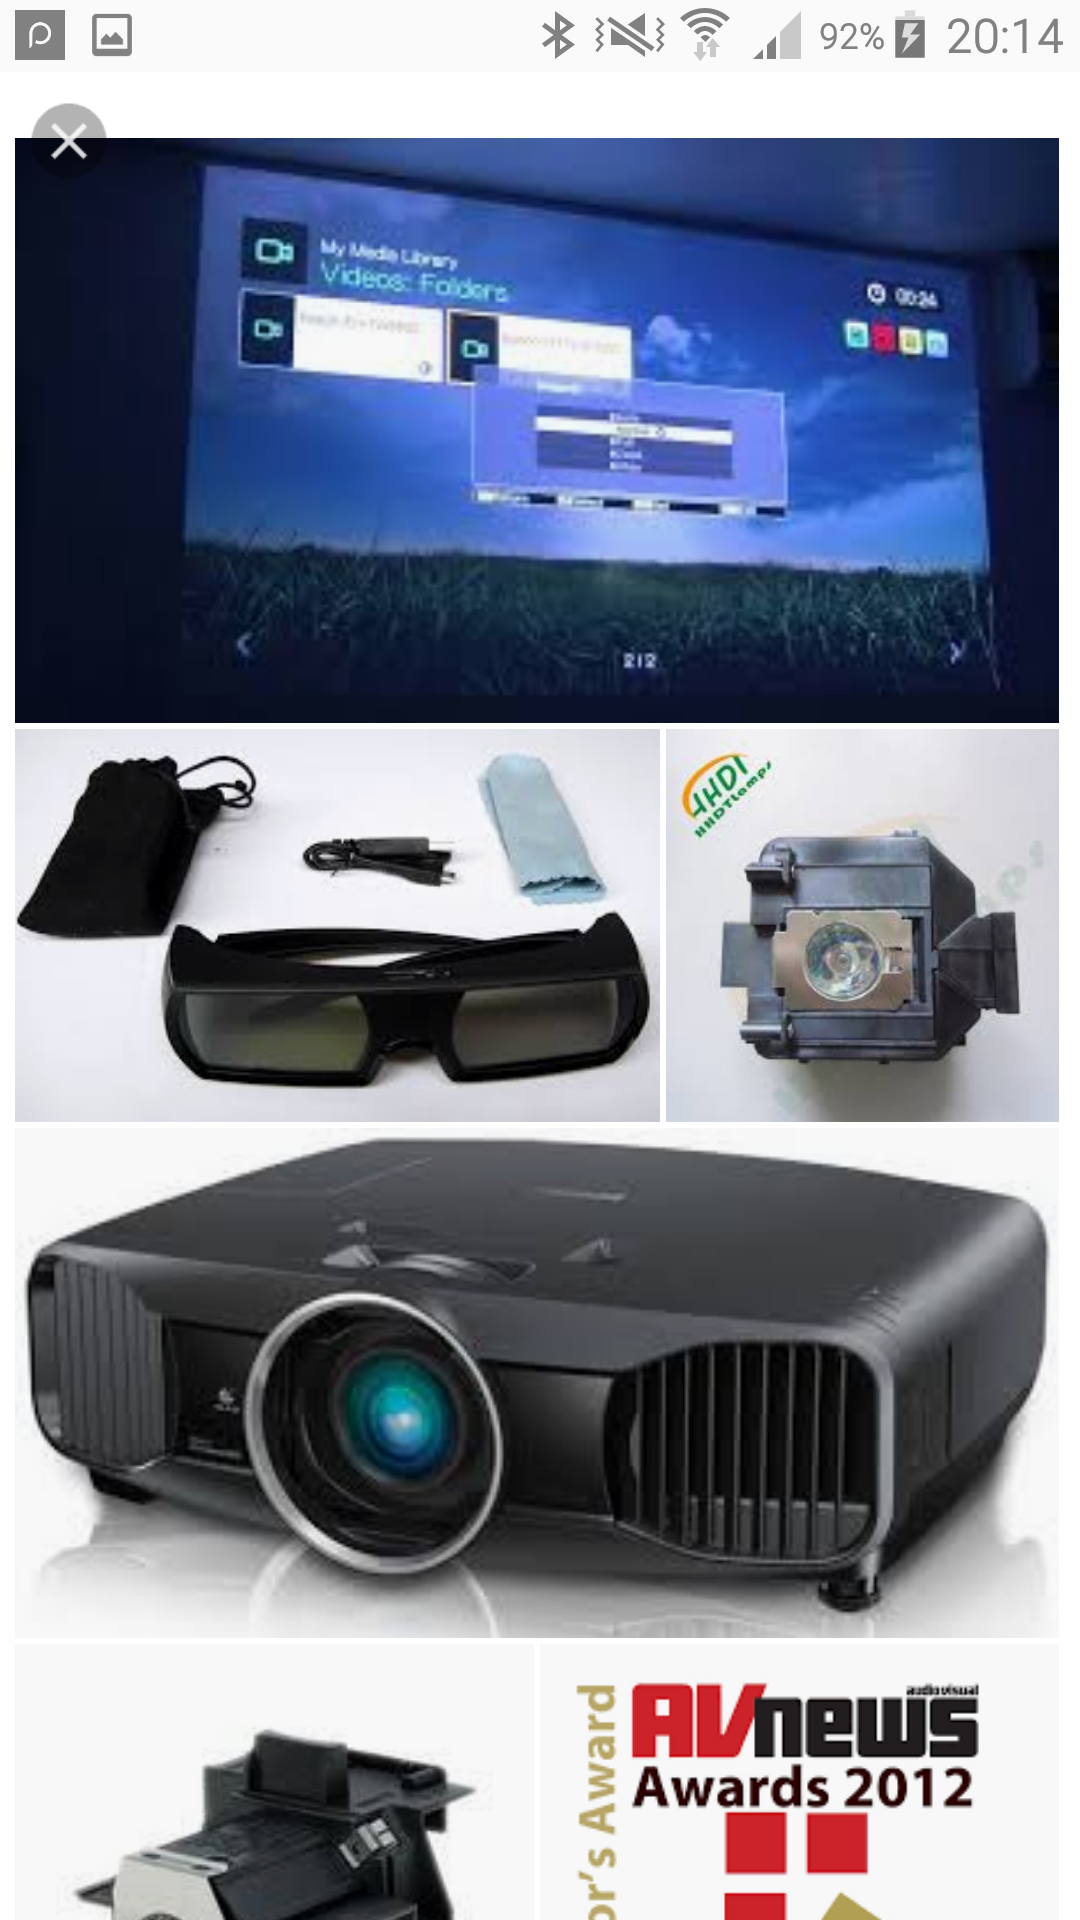 Epson 3d projector